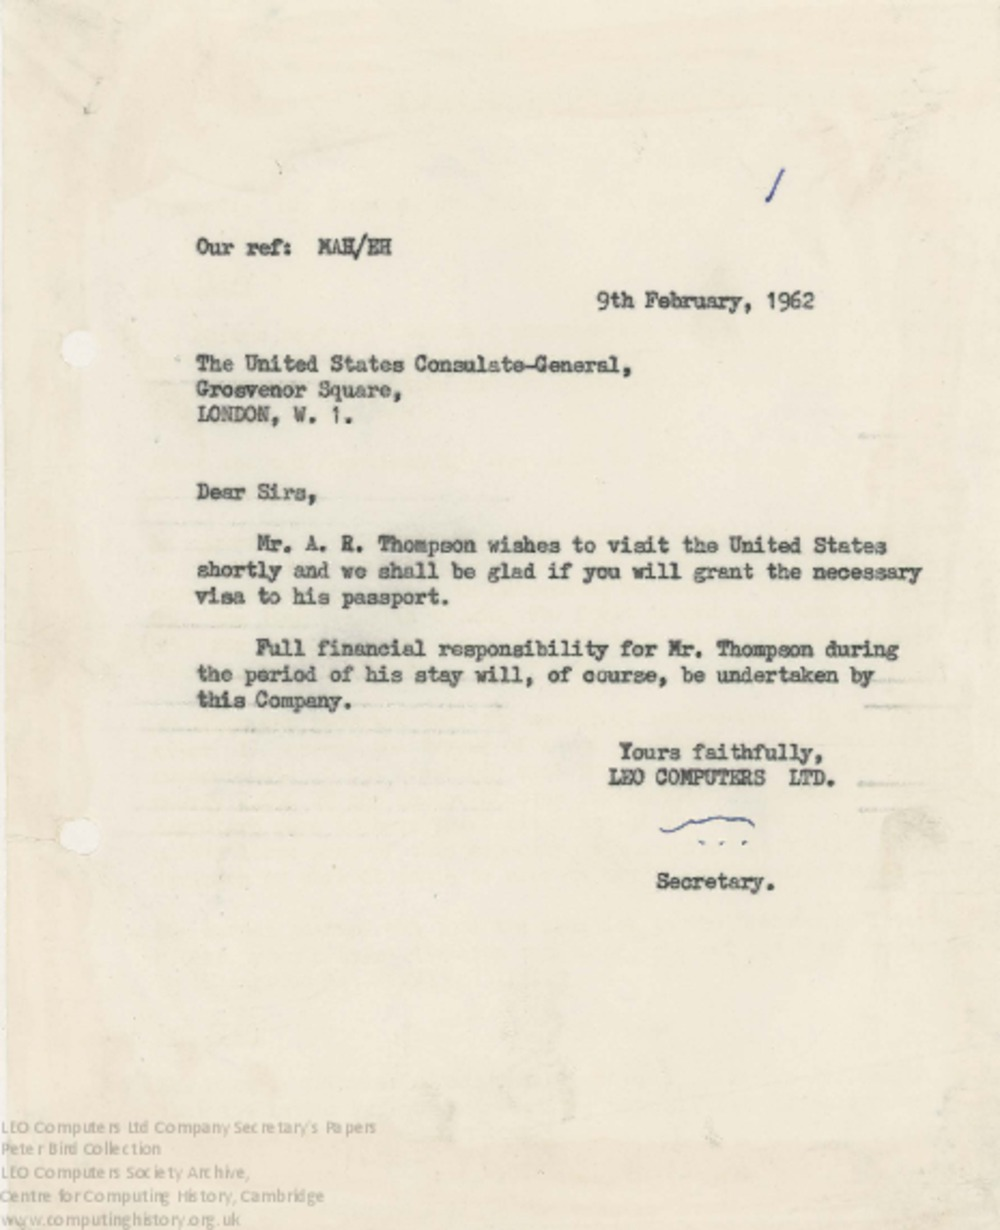 Article: 62858 US Visa request for T.R. Thompson, 9th Feb 1962